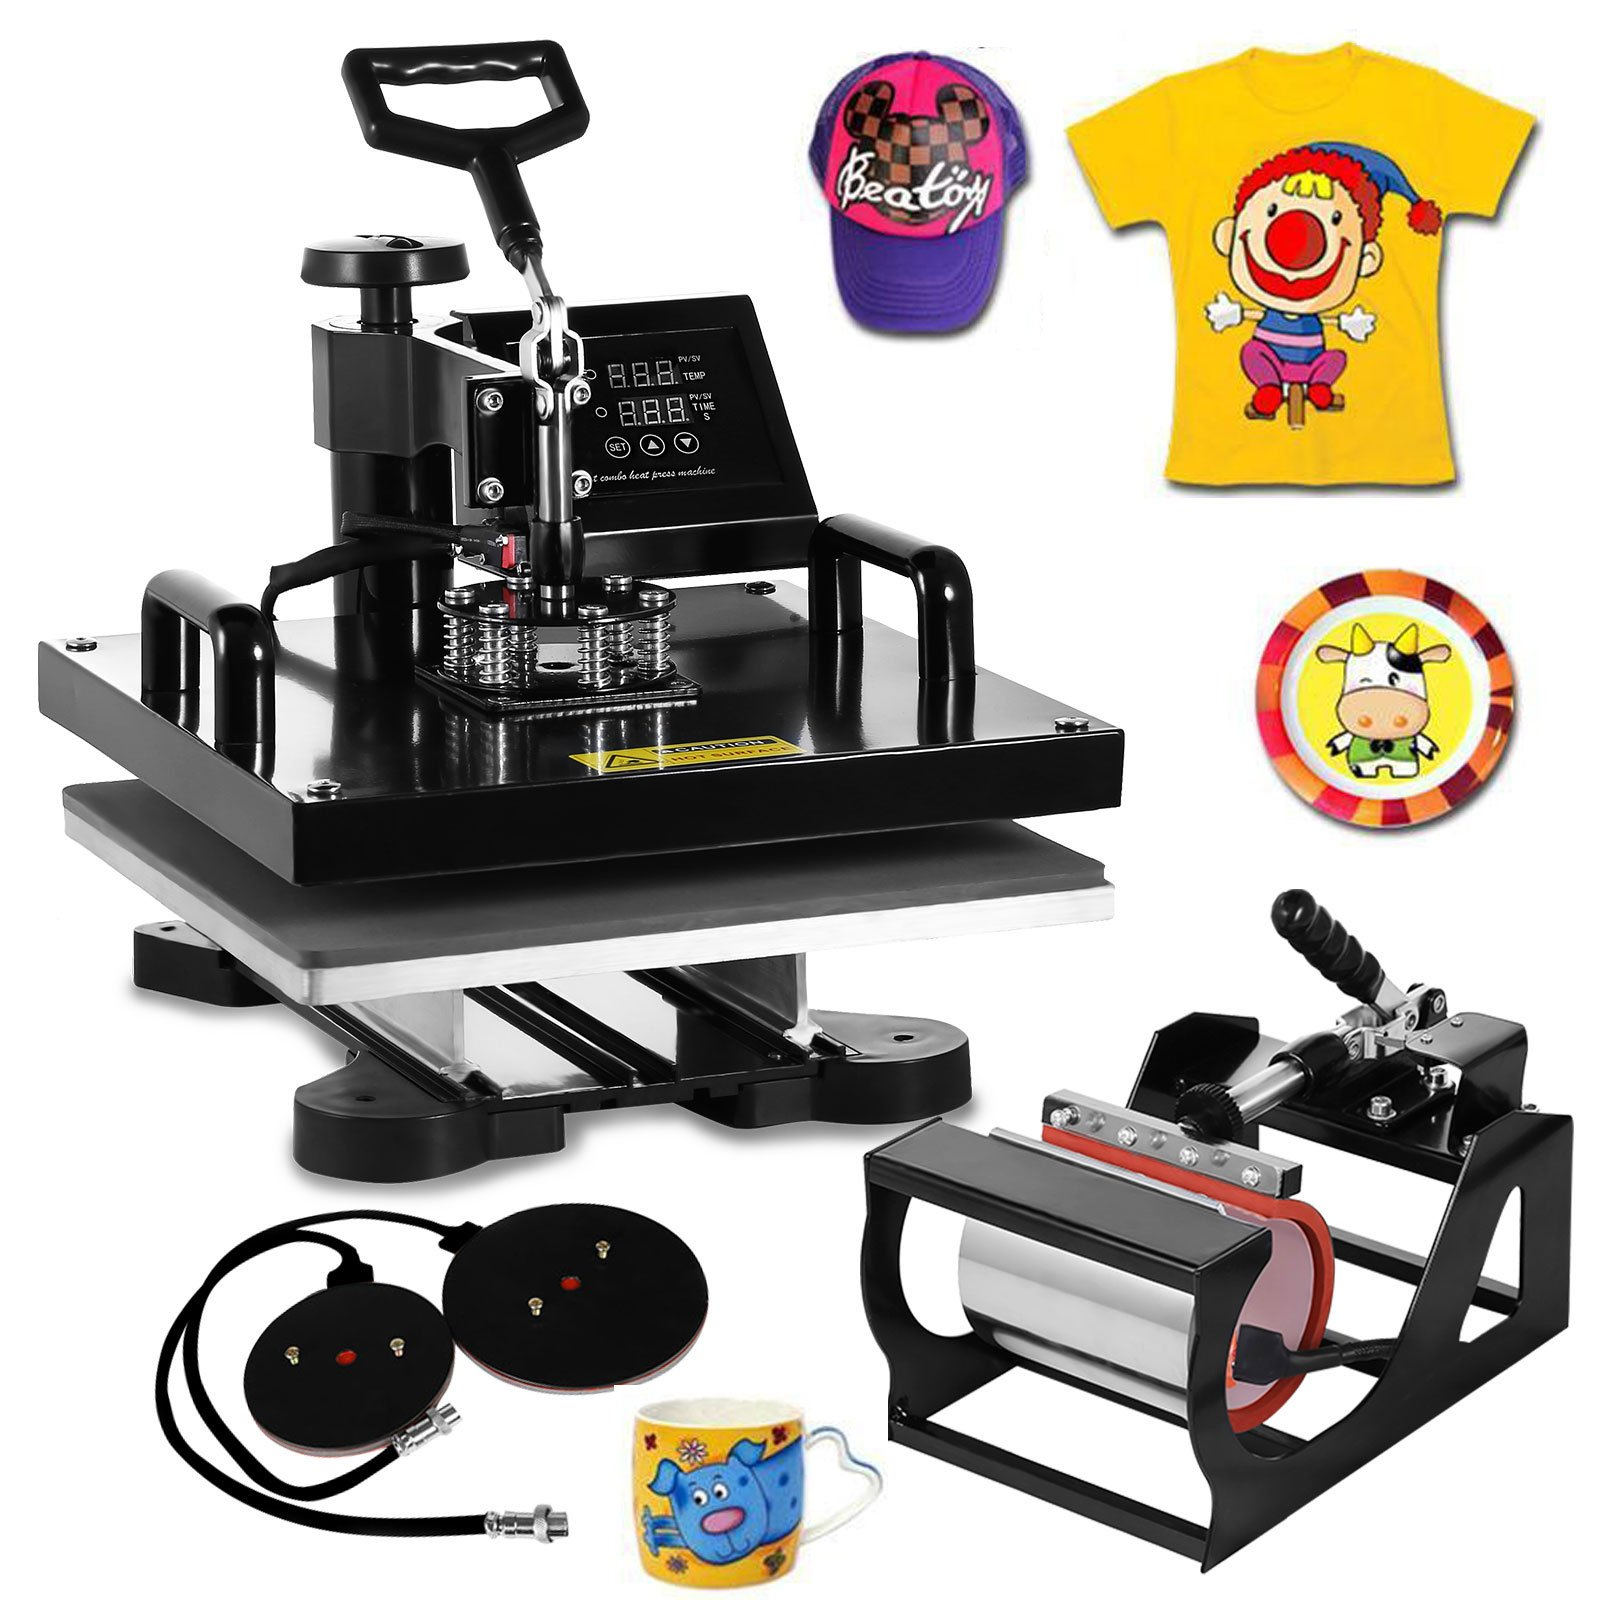 VEVOR Heat Press Machine15x15inch 5 in 1 Digital Multifunctional Sublimation Auto-Countdown Heat Presser for T shirts Hat Mug (5in1 15X15Inch Auto) by VEVOR